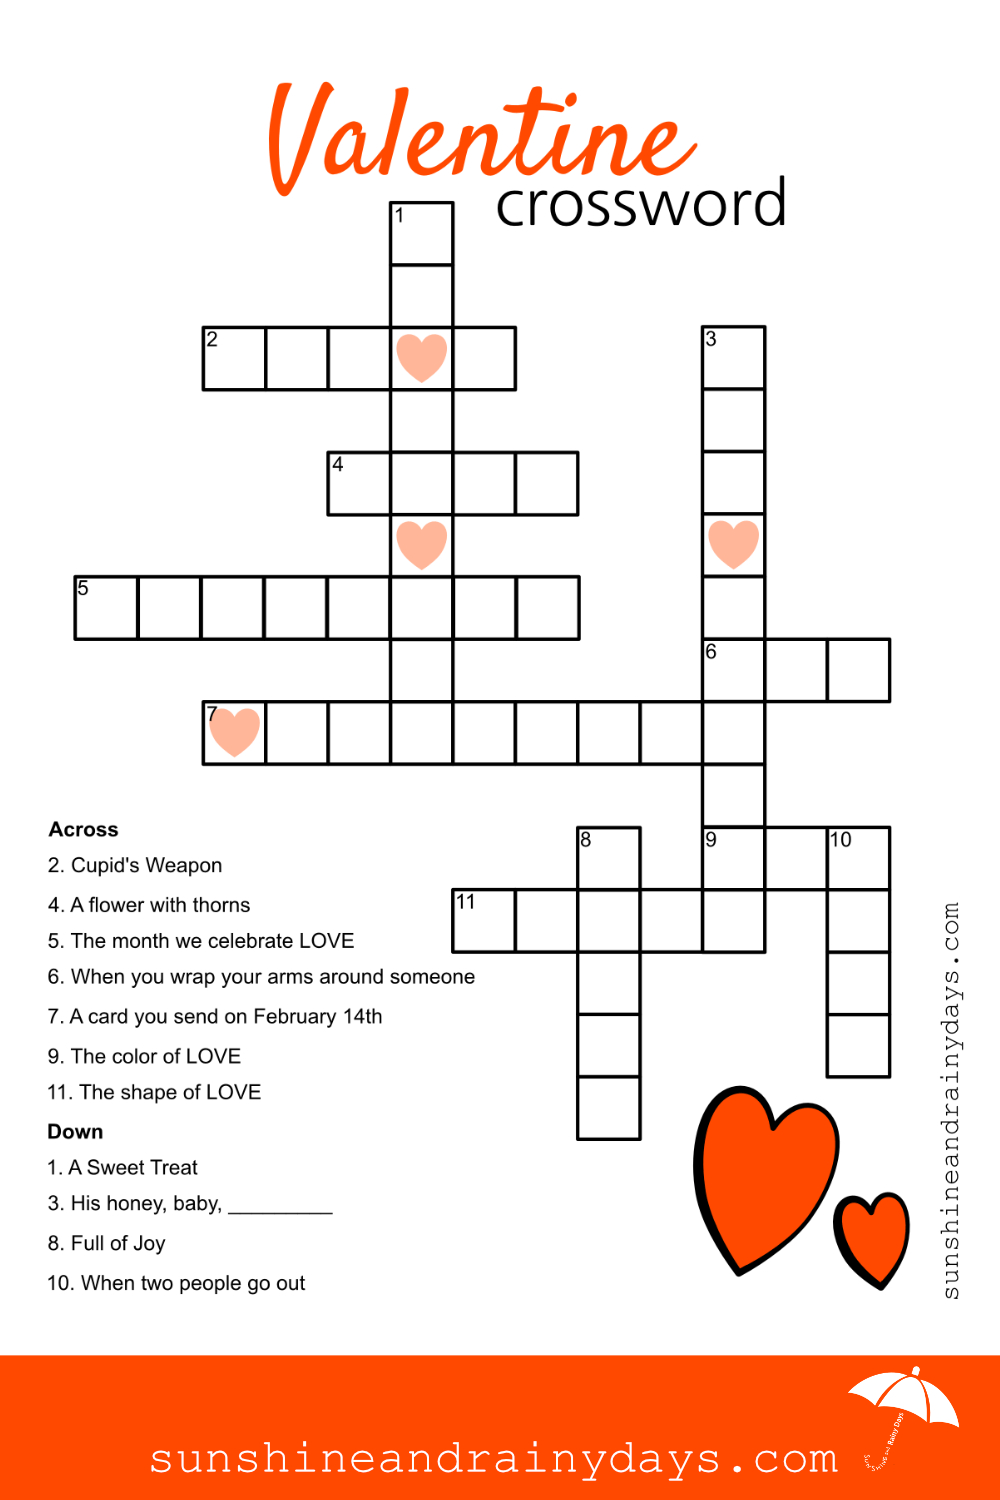 Valentine Crossword Puzzle - Sunshine And Rainy Days - Printable Crossword Puzzles About Love